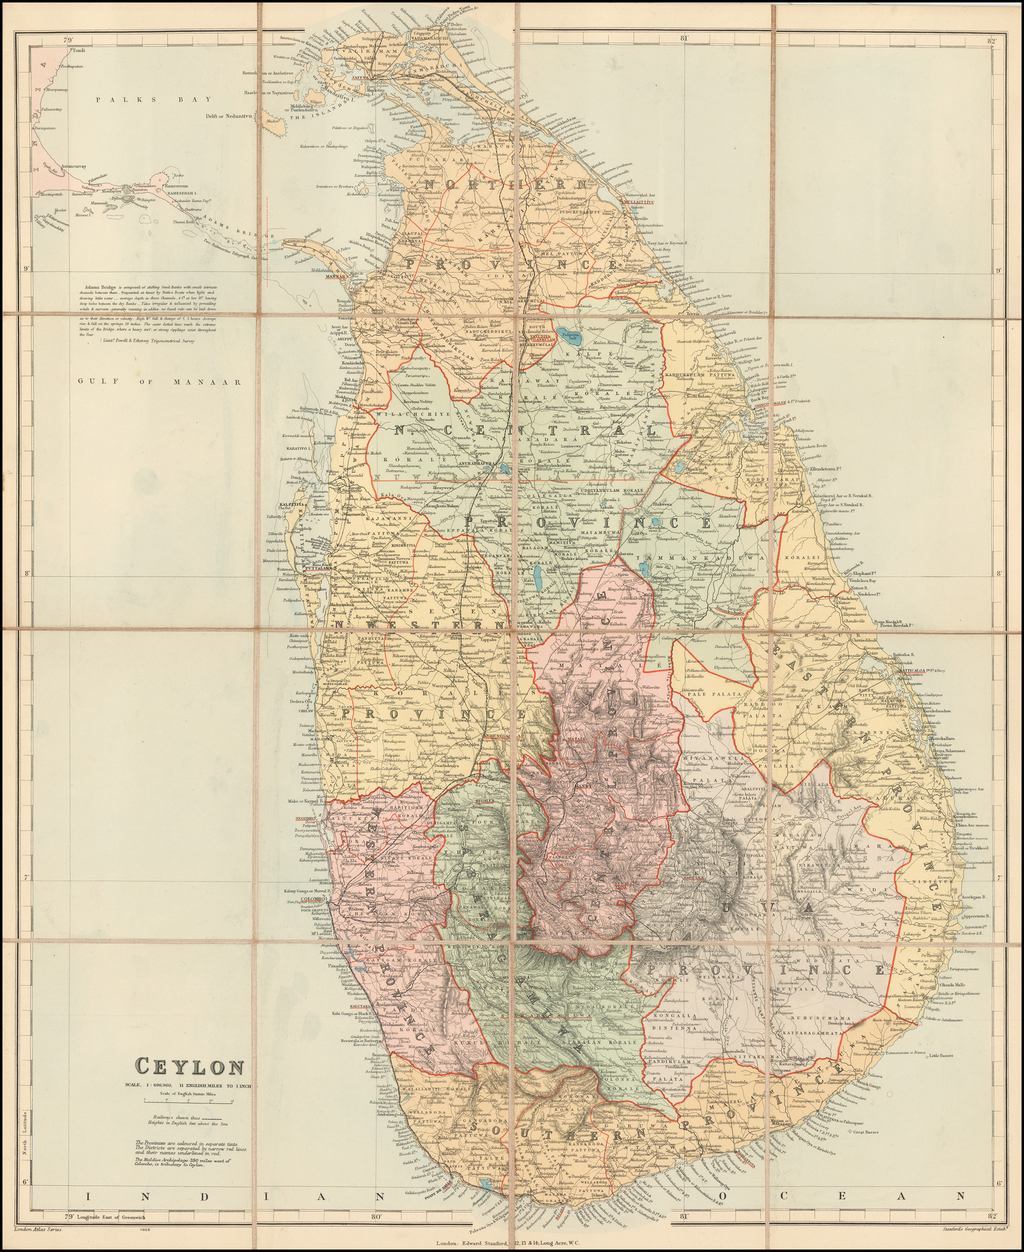 Ceylon (separately published) By Edward Stanford